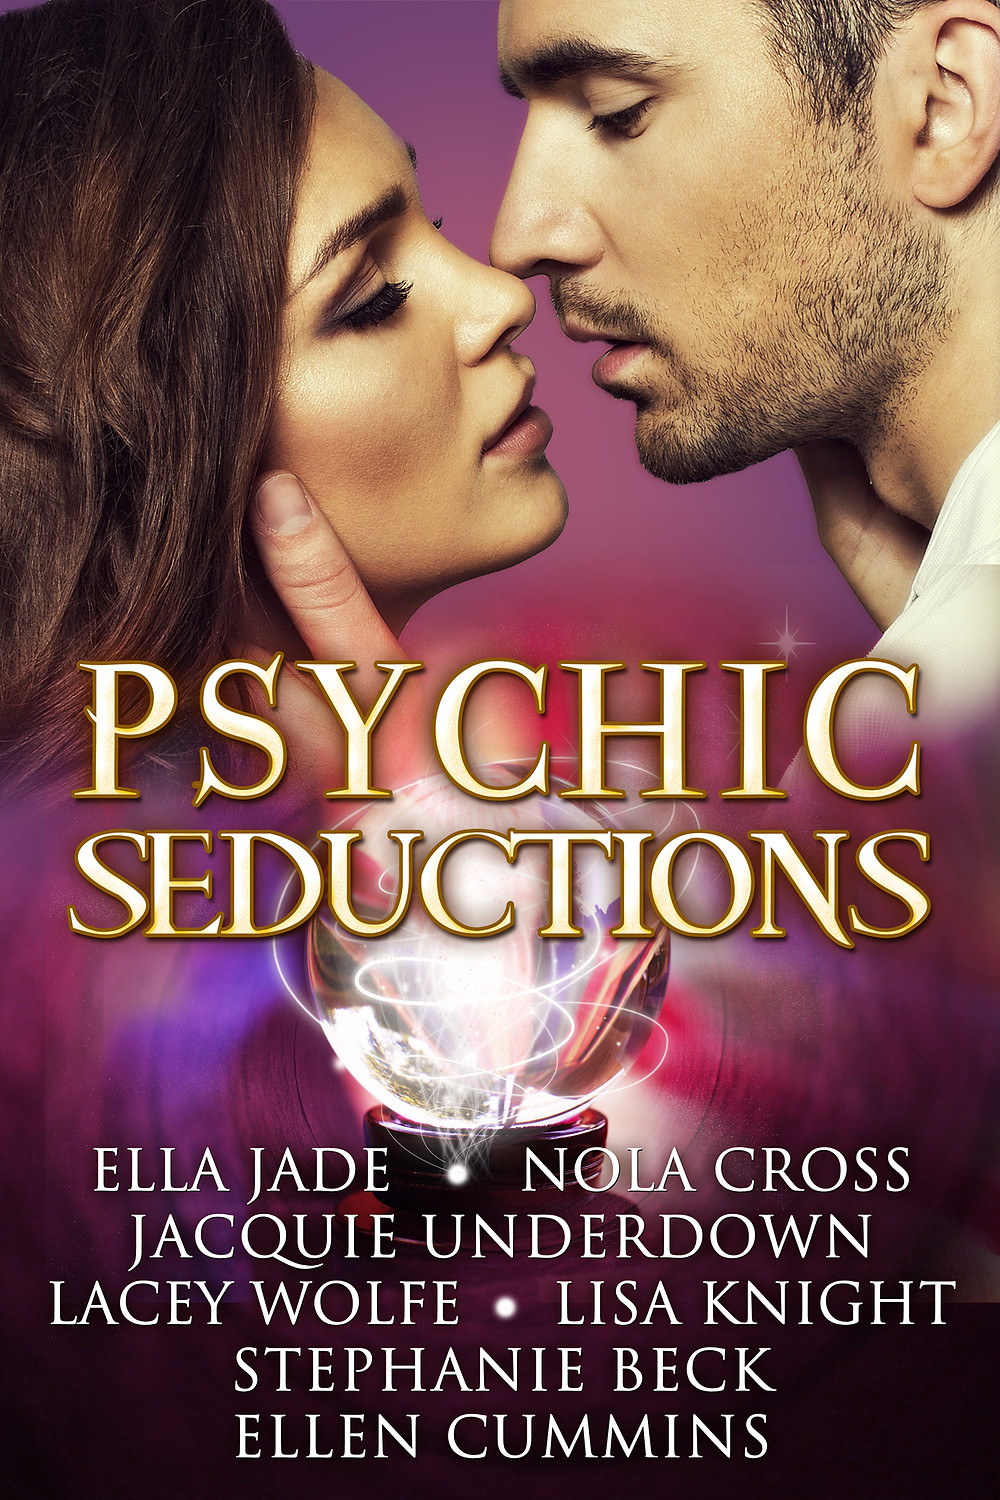 PsychicSeductions_Large.jpg